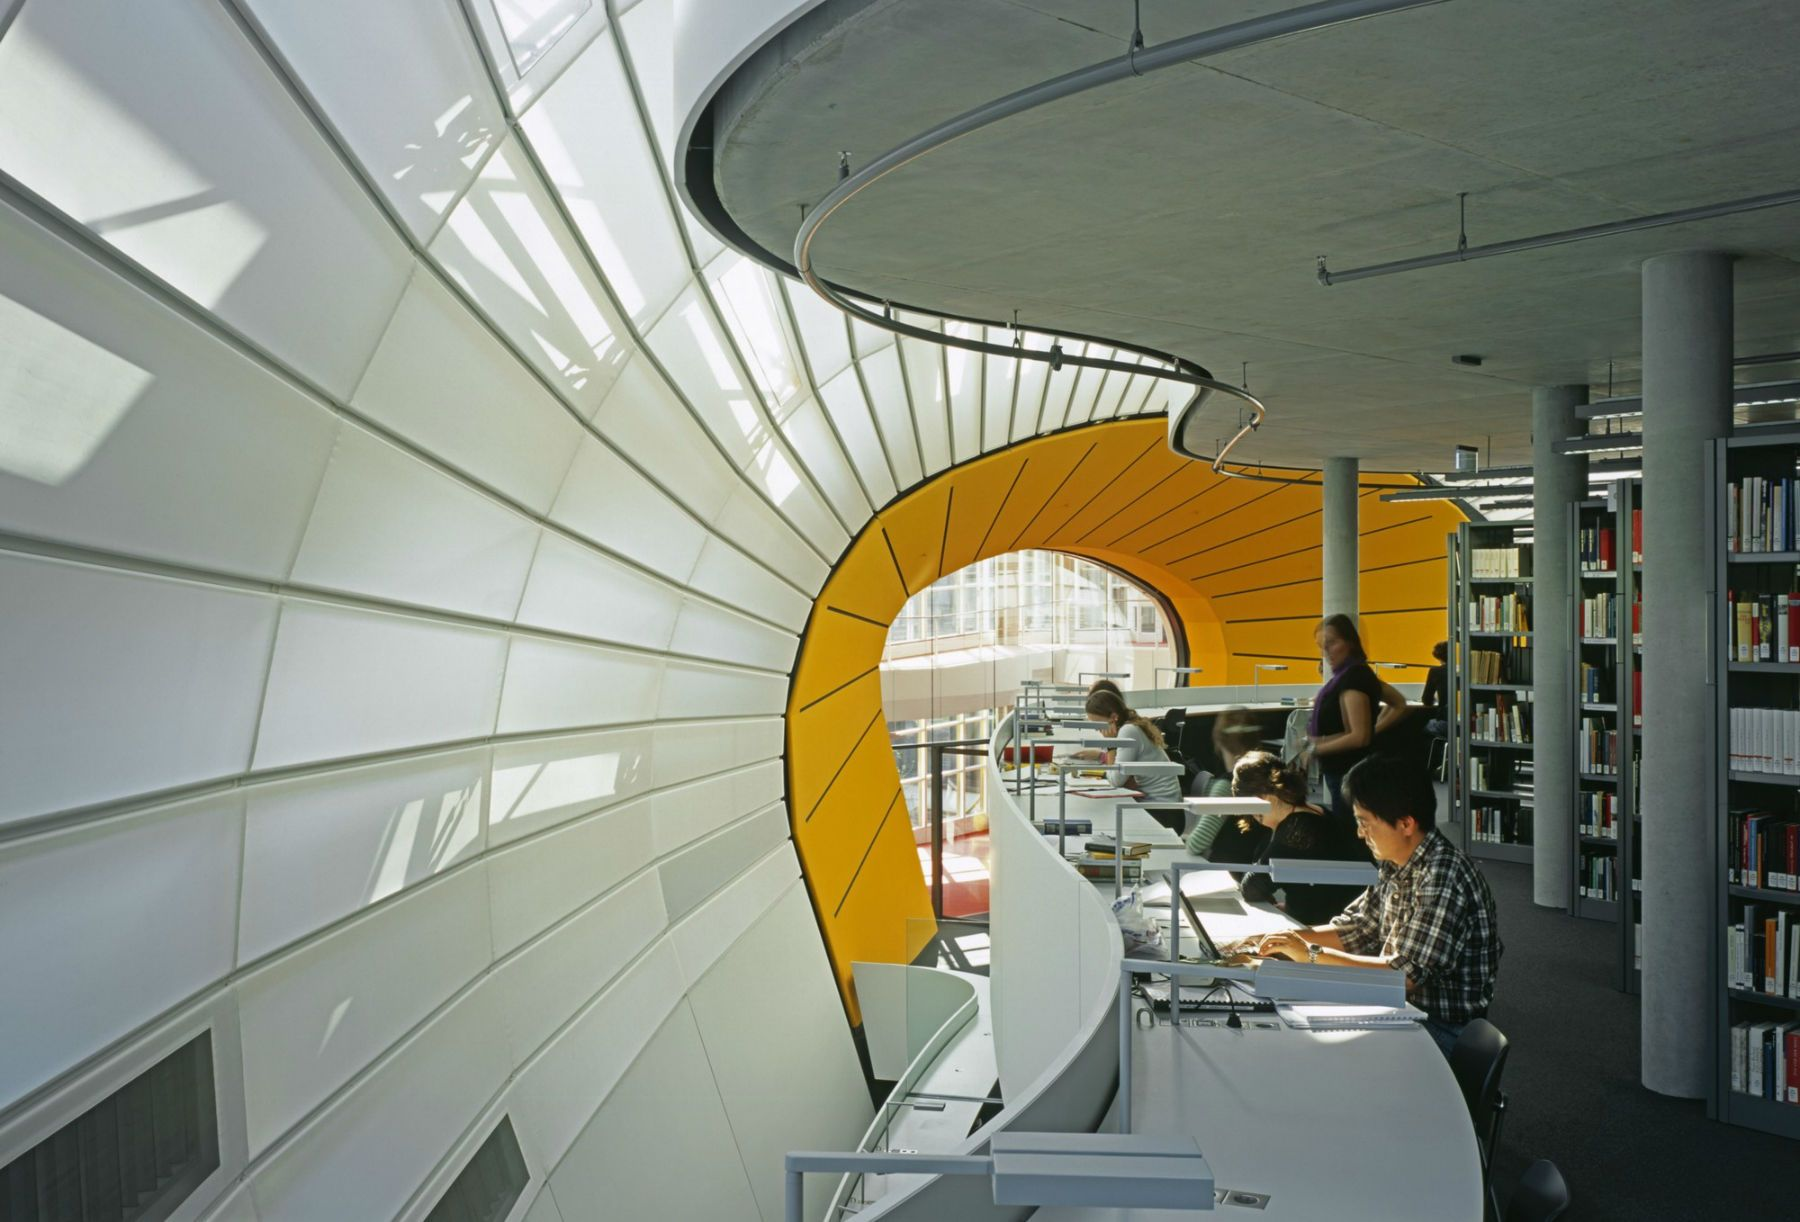 Free University Philology Library Foster Partners Design  # Bibliotheque Placo Design